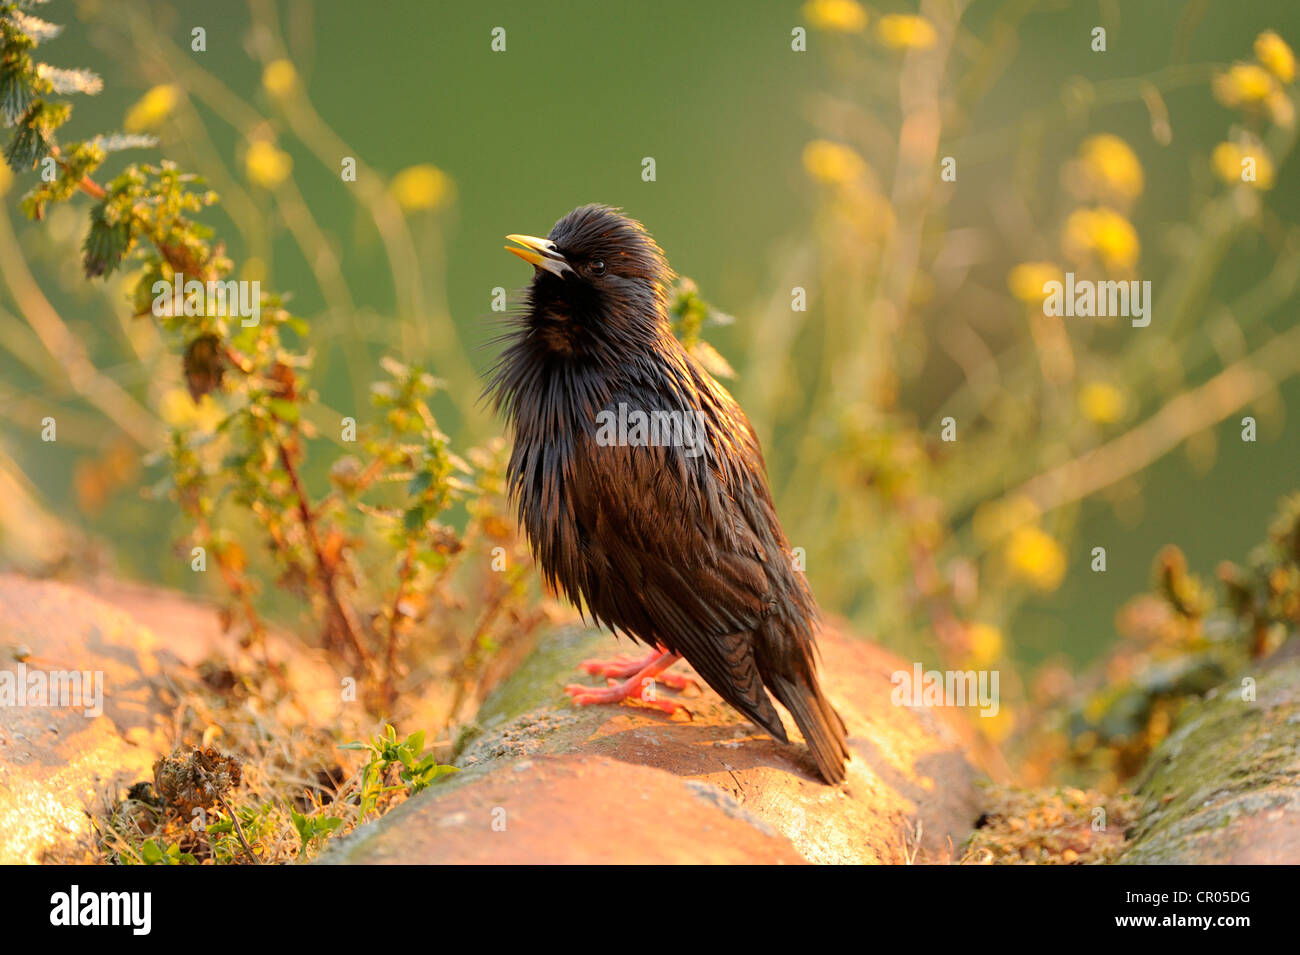 Spotless Starling (Sturnus unicolor), perched on roof tile Stock Photo